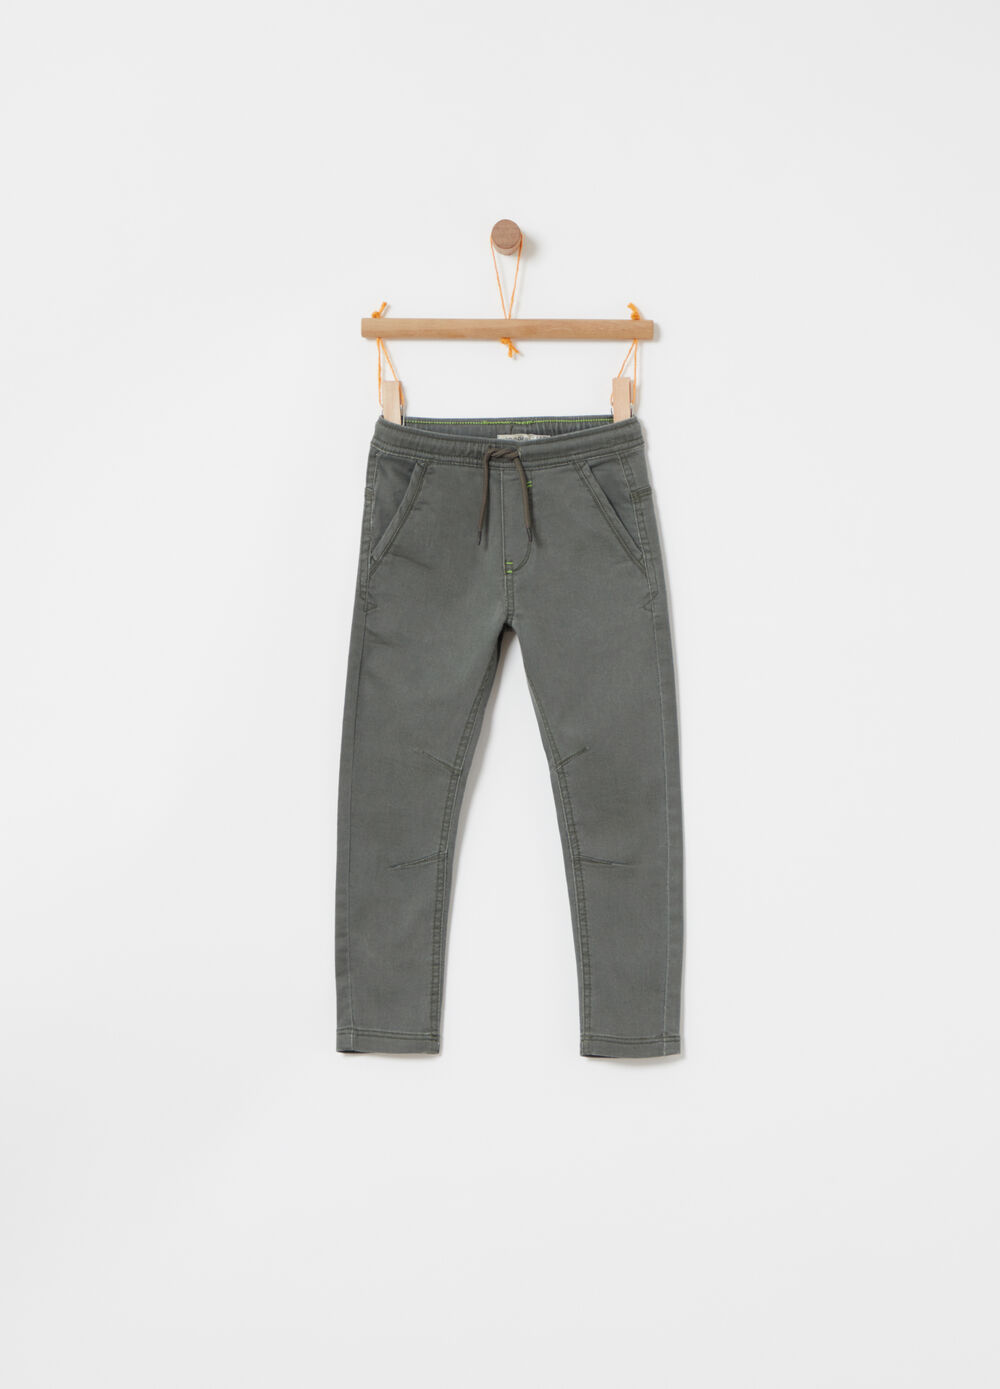 Pantaloni jogger denim stretch tasche